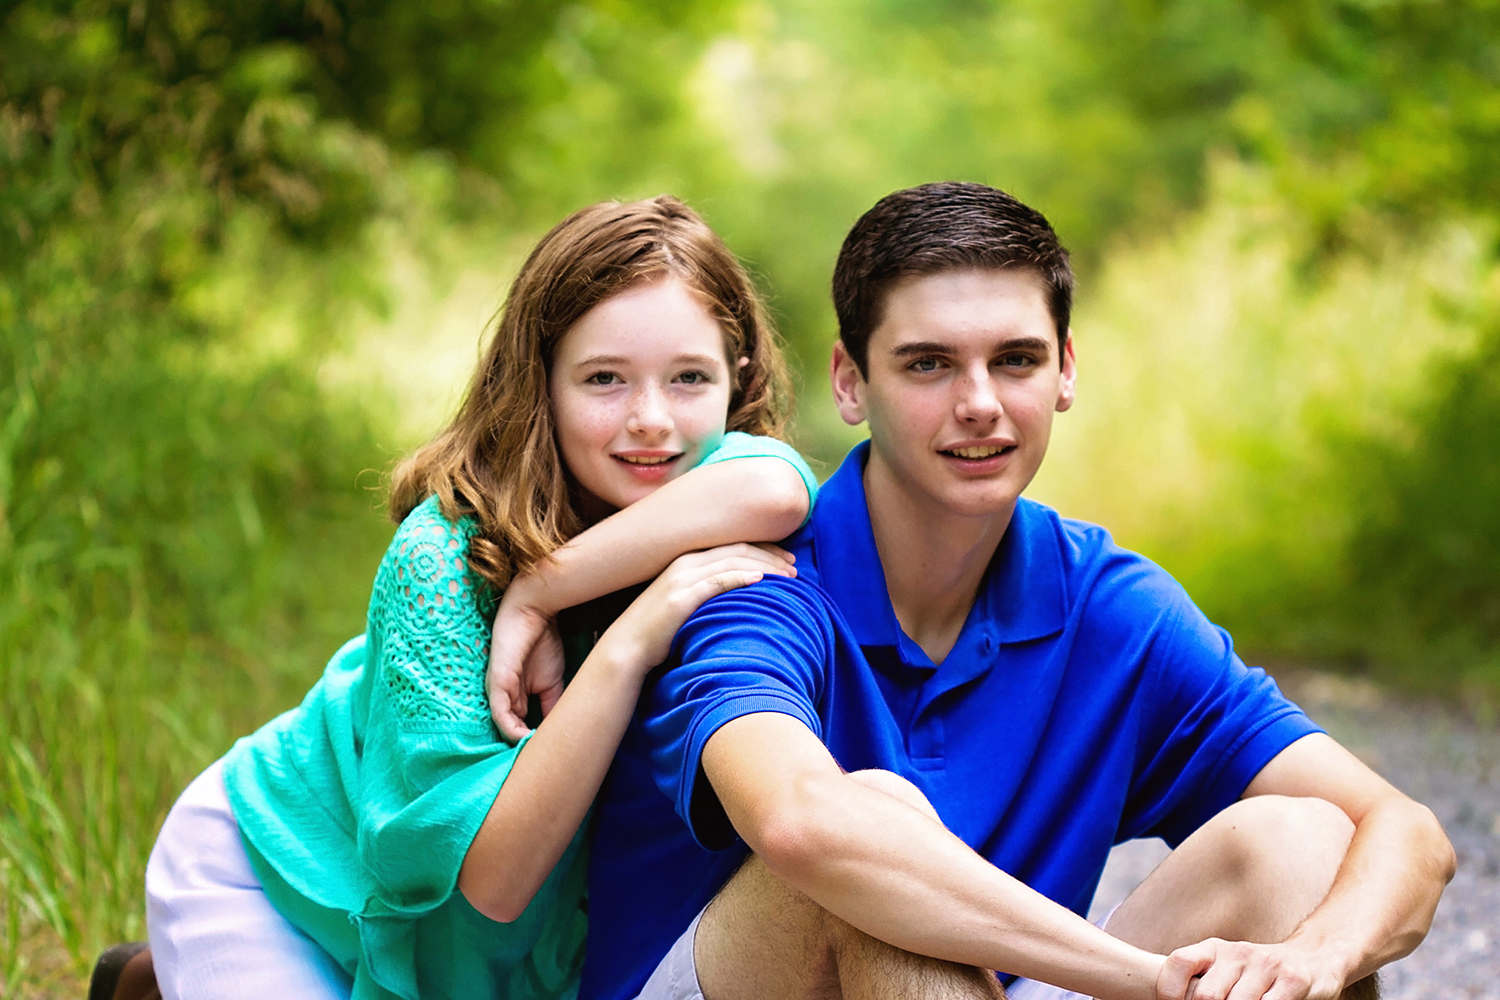 sibling in green and blue on forest path.jpg